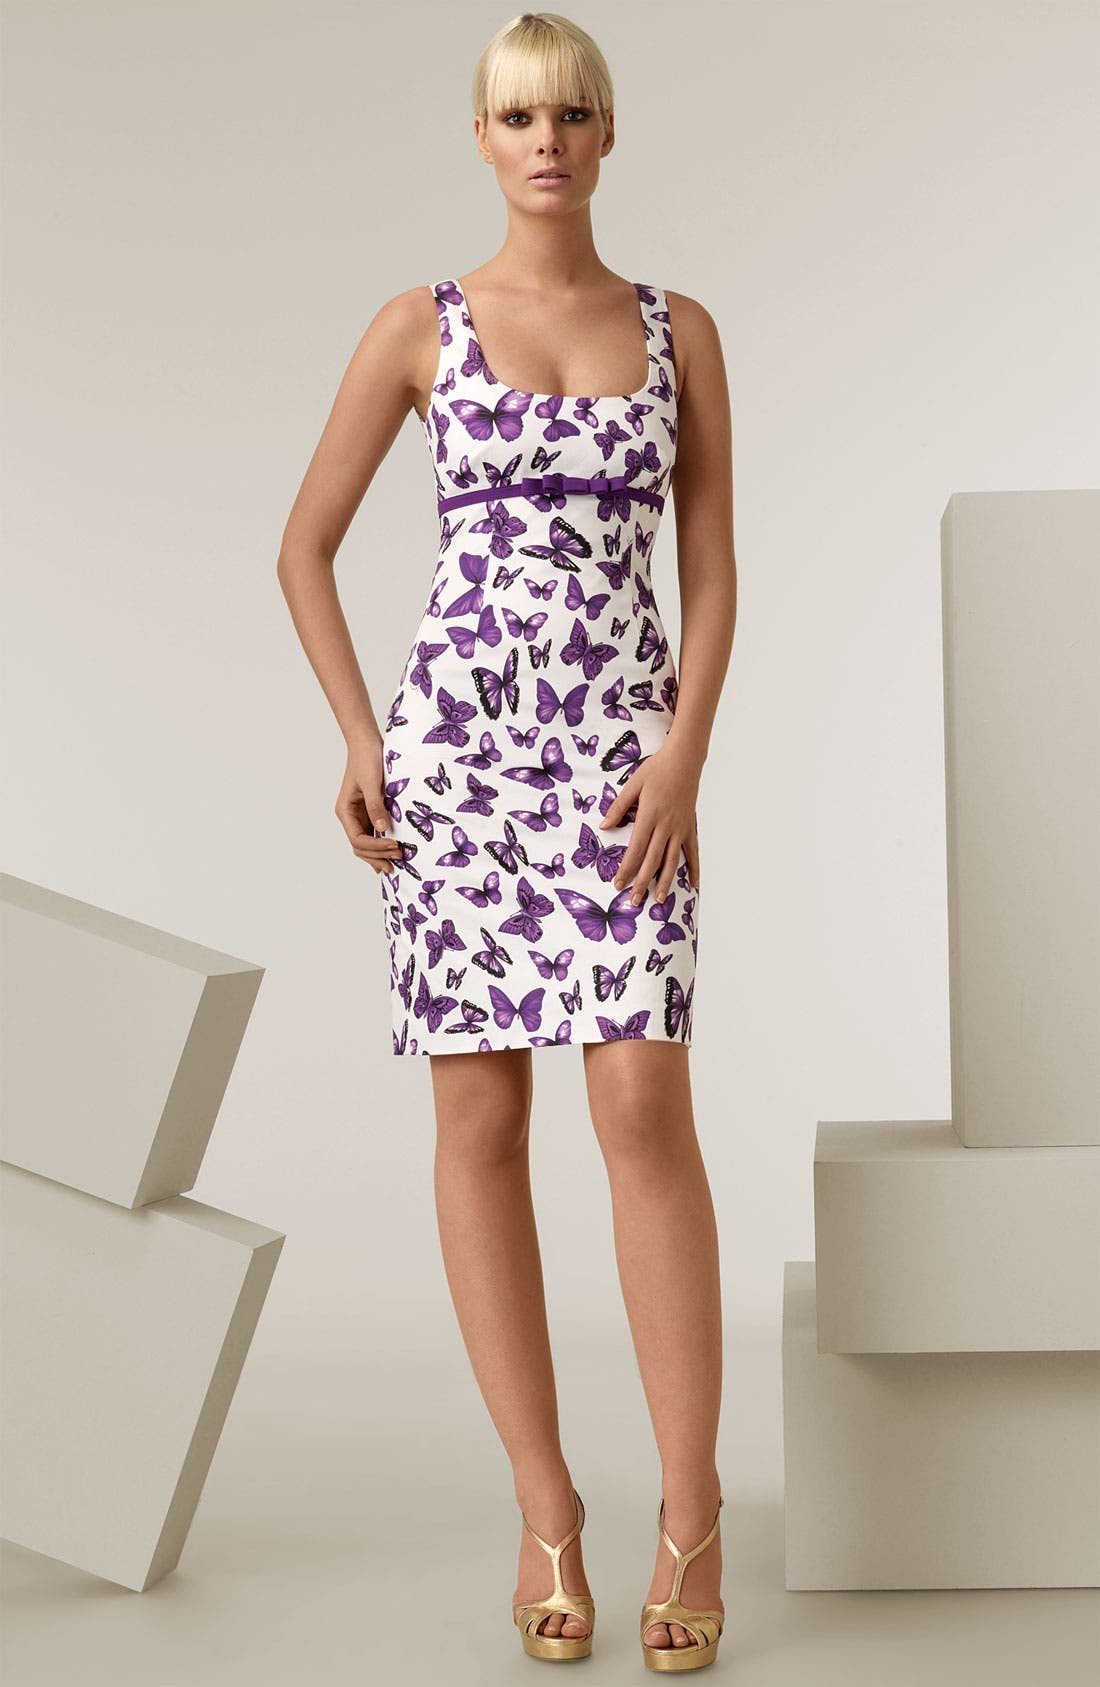 Butterfly Print Dress,                             Main thumbnail 1, color,                             136